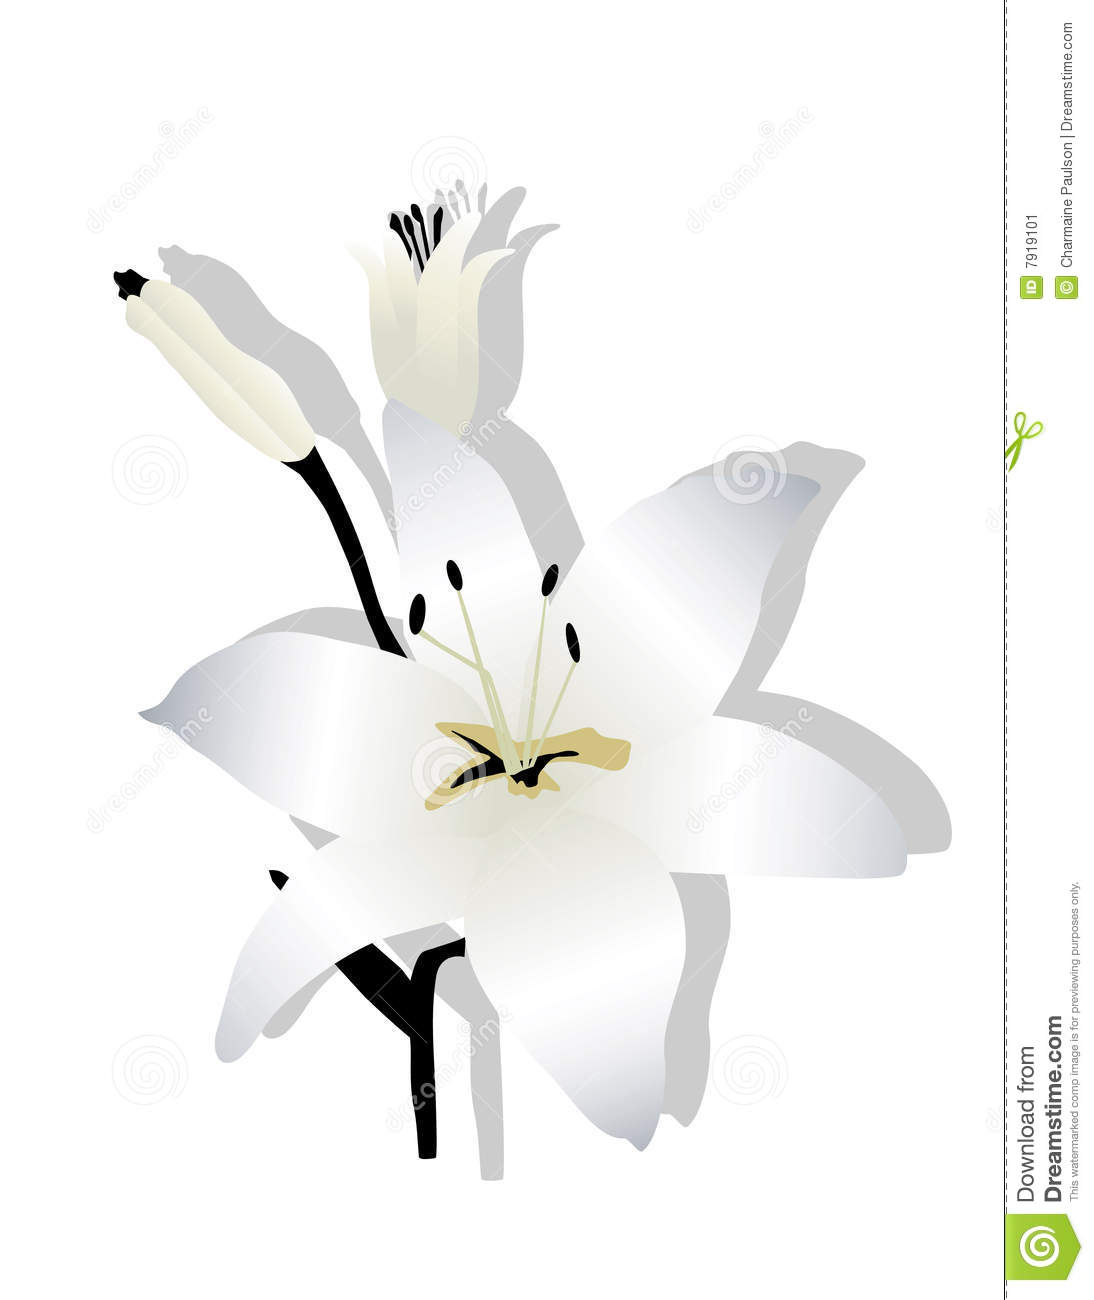 easter lilies free clipart - photo #40